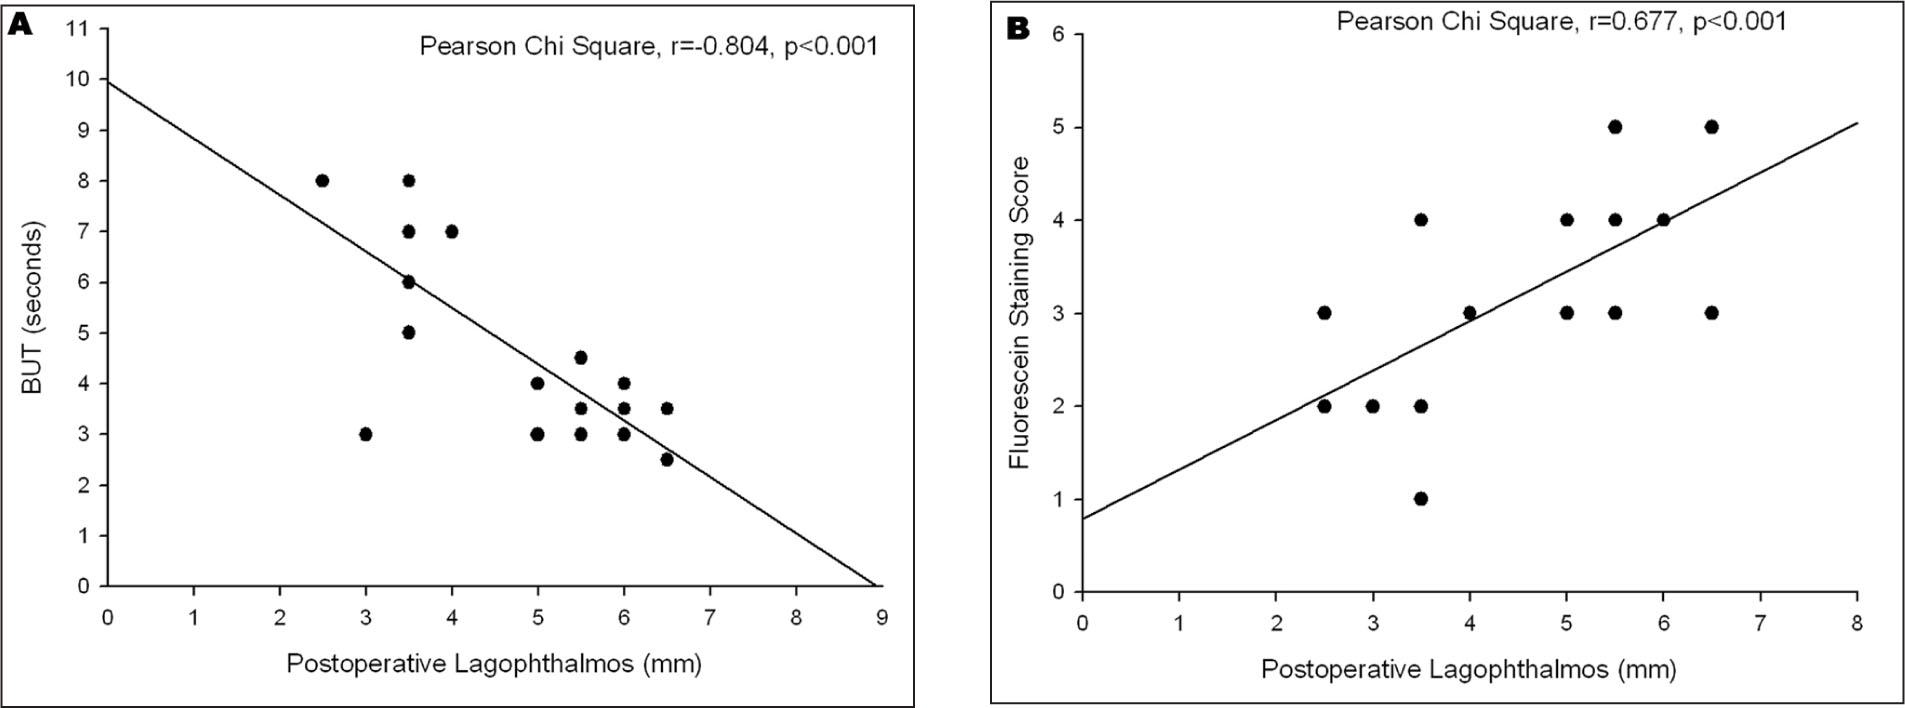 Correlation of the Degree of Lagophthalmos with (A) Tear Break-Up Time (but) and (B) Corneal Fluorescein Staining Scores in Patients with Poor Bell's Phenomenon. The Degree of Lagophthalmos Correlated Highly with (A) but (pearson Correlation, r = −0.804, p < .001) and (B) Fluorescein Staining Scores (pearson Correlation, r = 0.677, p < .001).